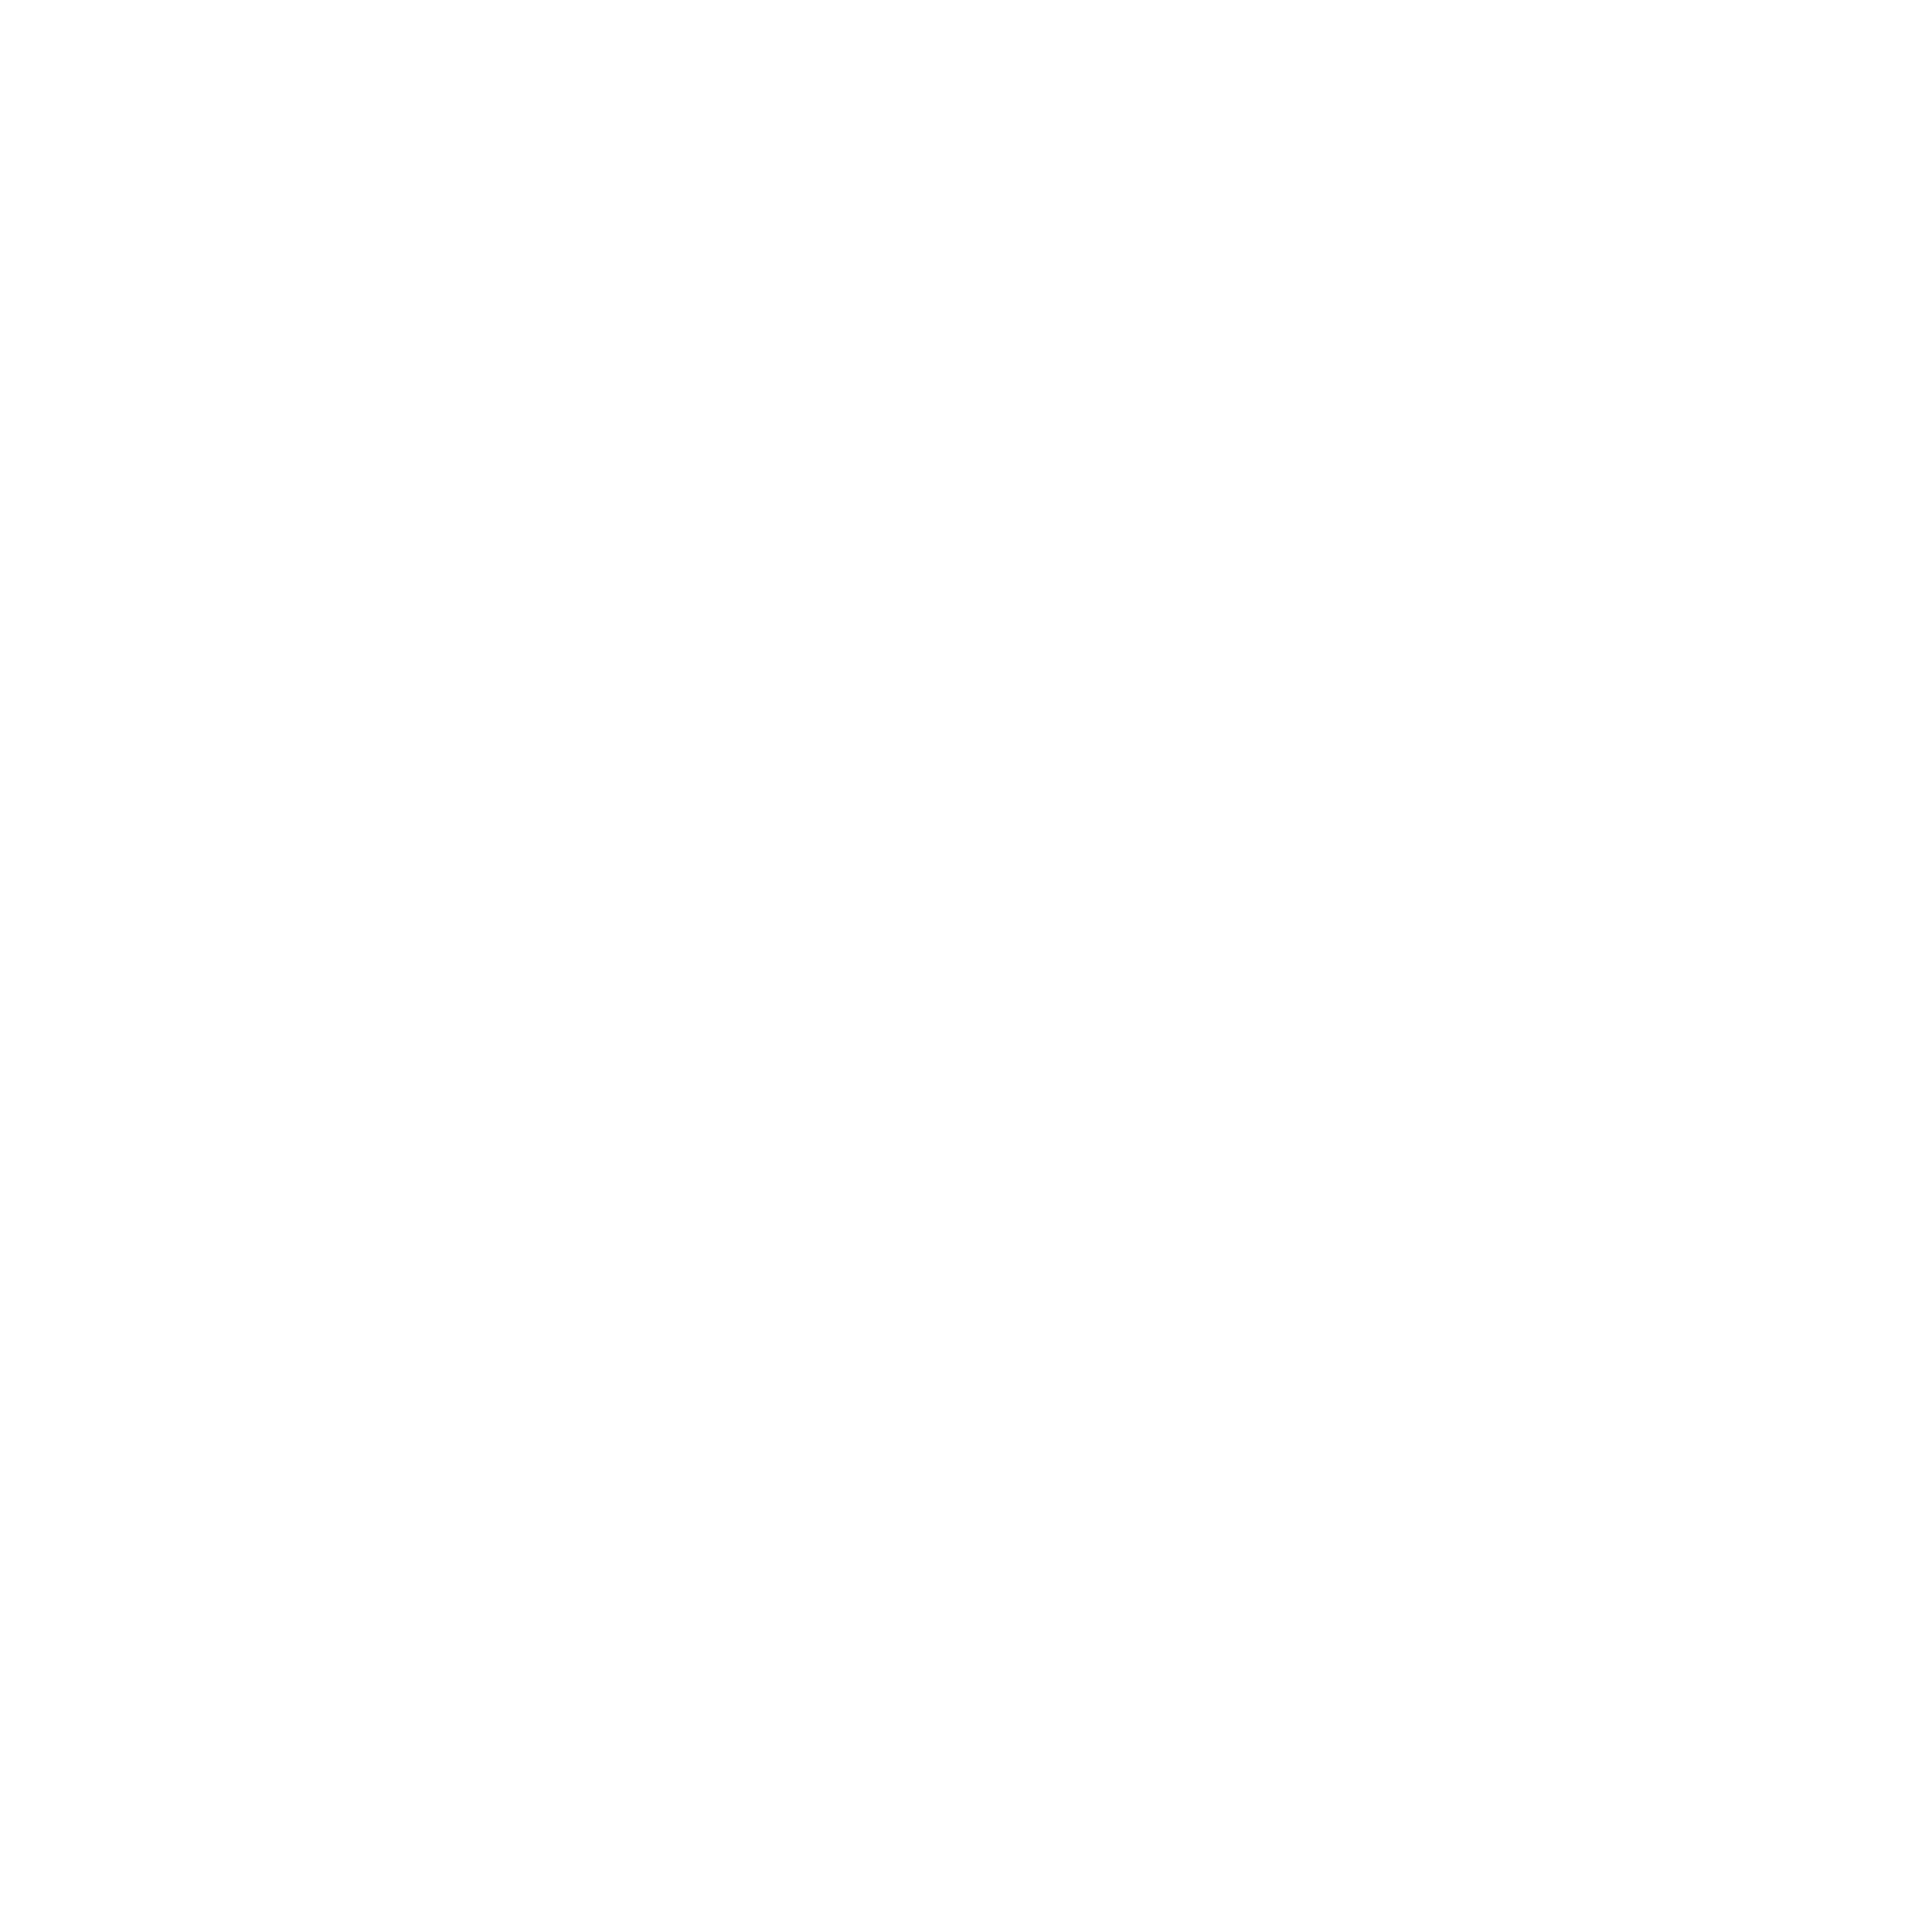 Mithras Technology: Finalist 2020 at the Swiss Innovation Challenge.